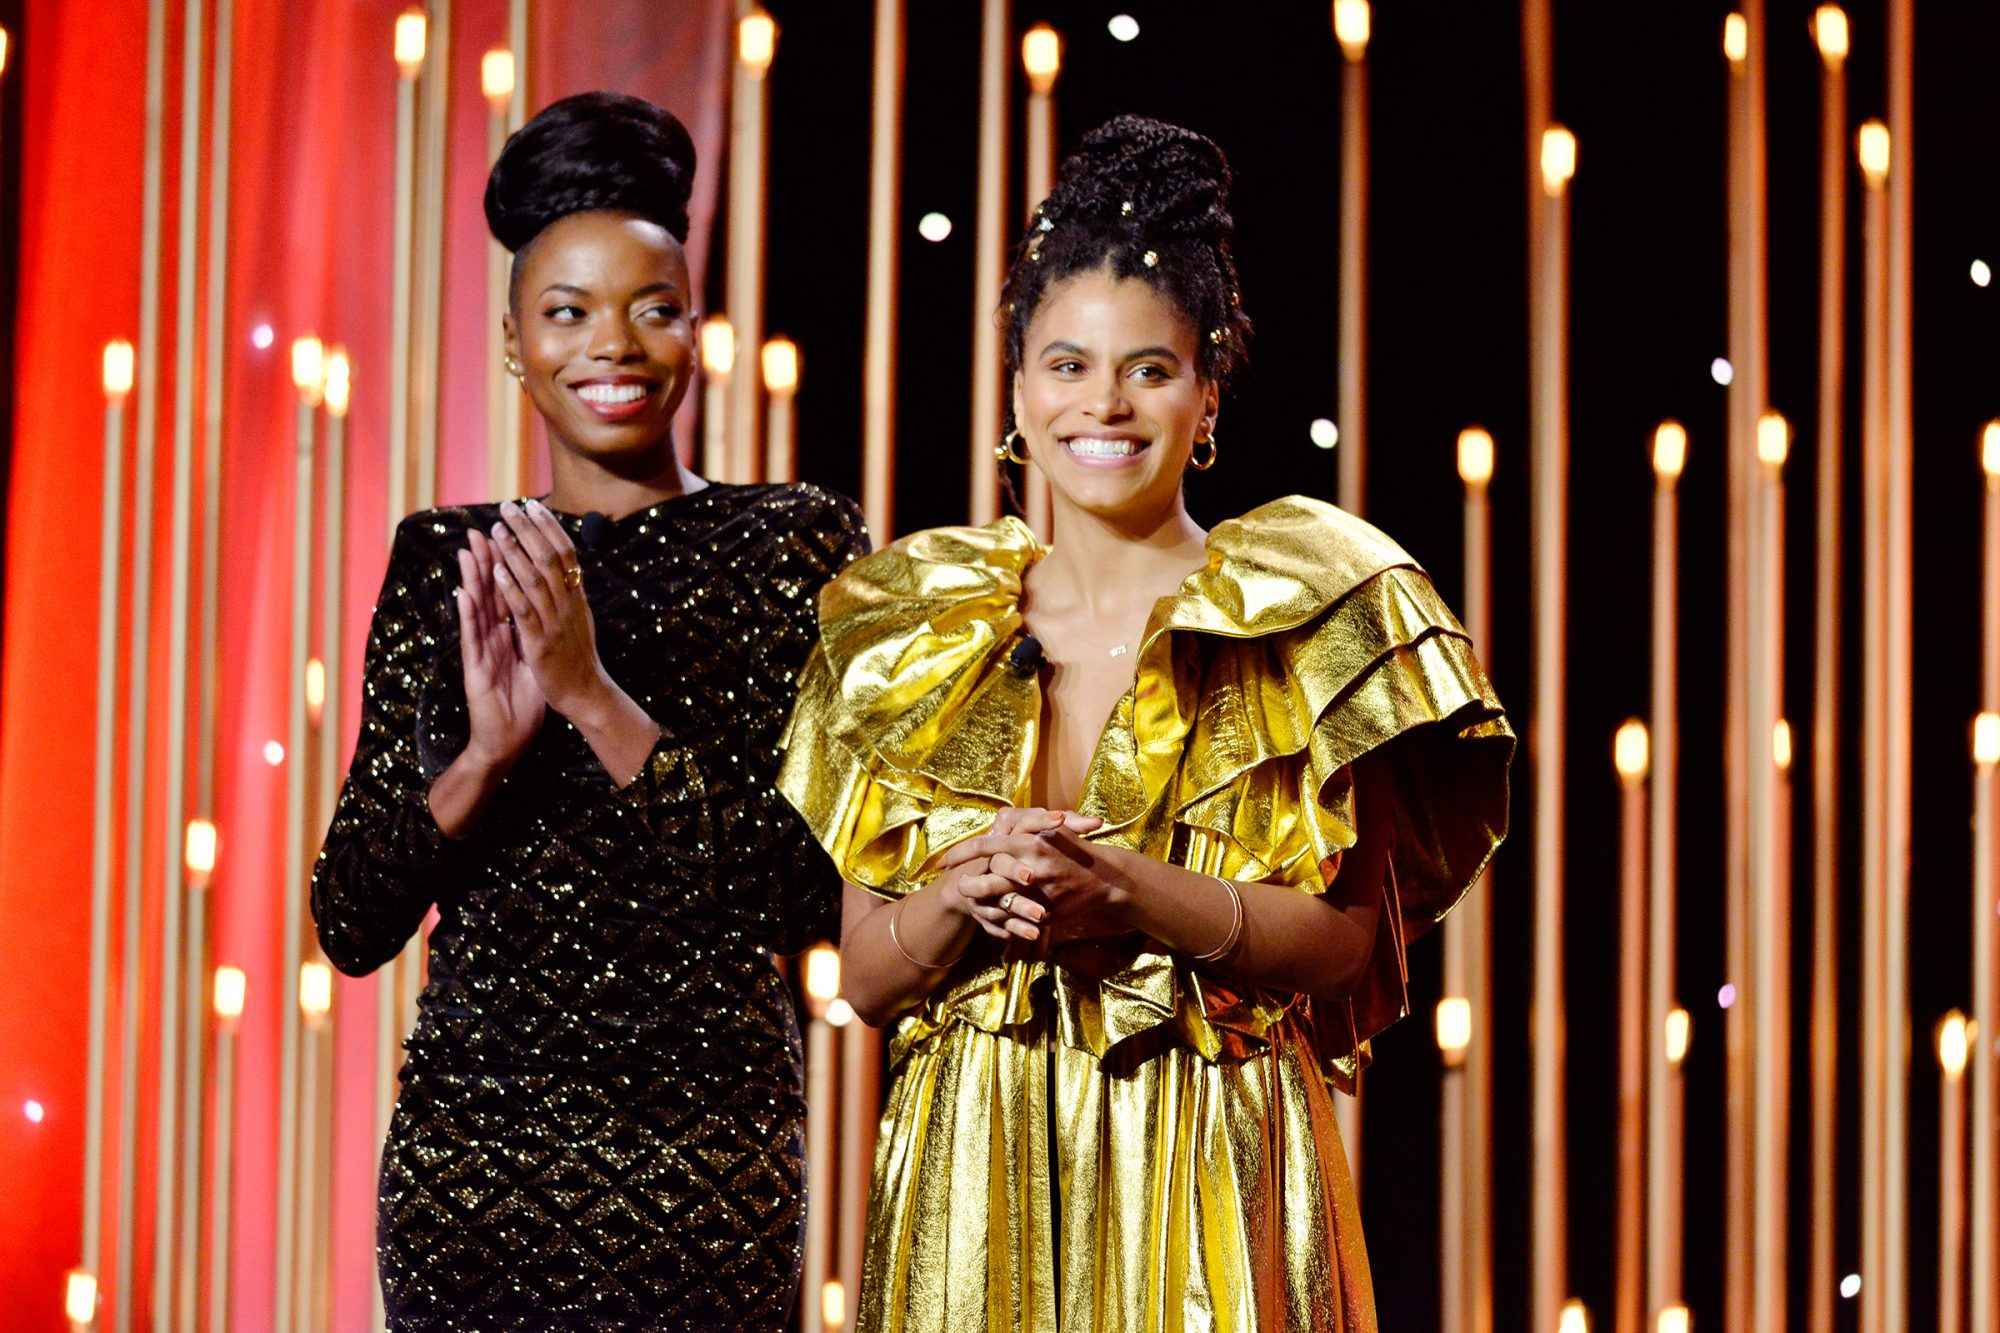 Sasheer Zamata (L) and Zazie Beetz speak onstage during The Trevor Project's TrevorLIVE LA 2019 at The Beverly Hilton Hotel on November 17, 2019 in Beverly Hills, California